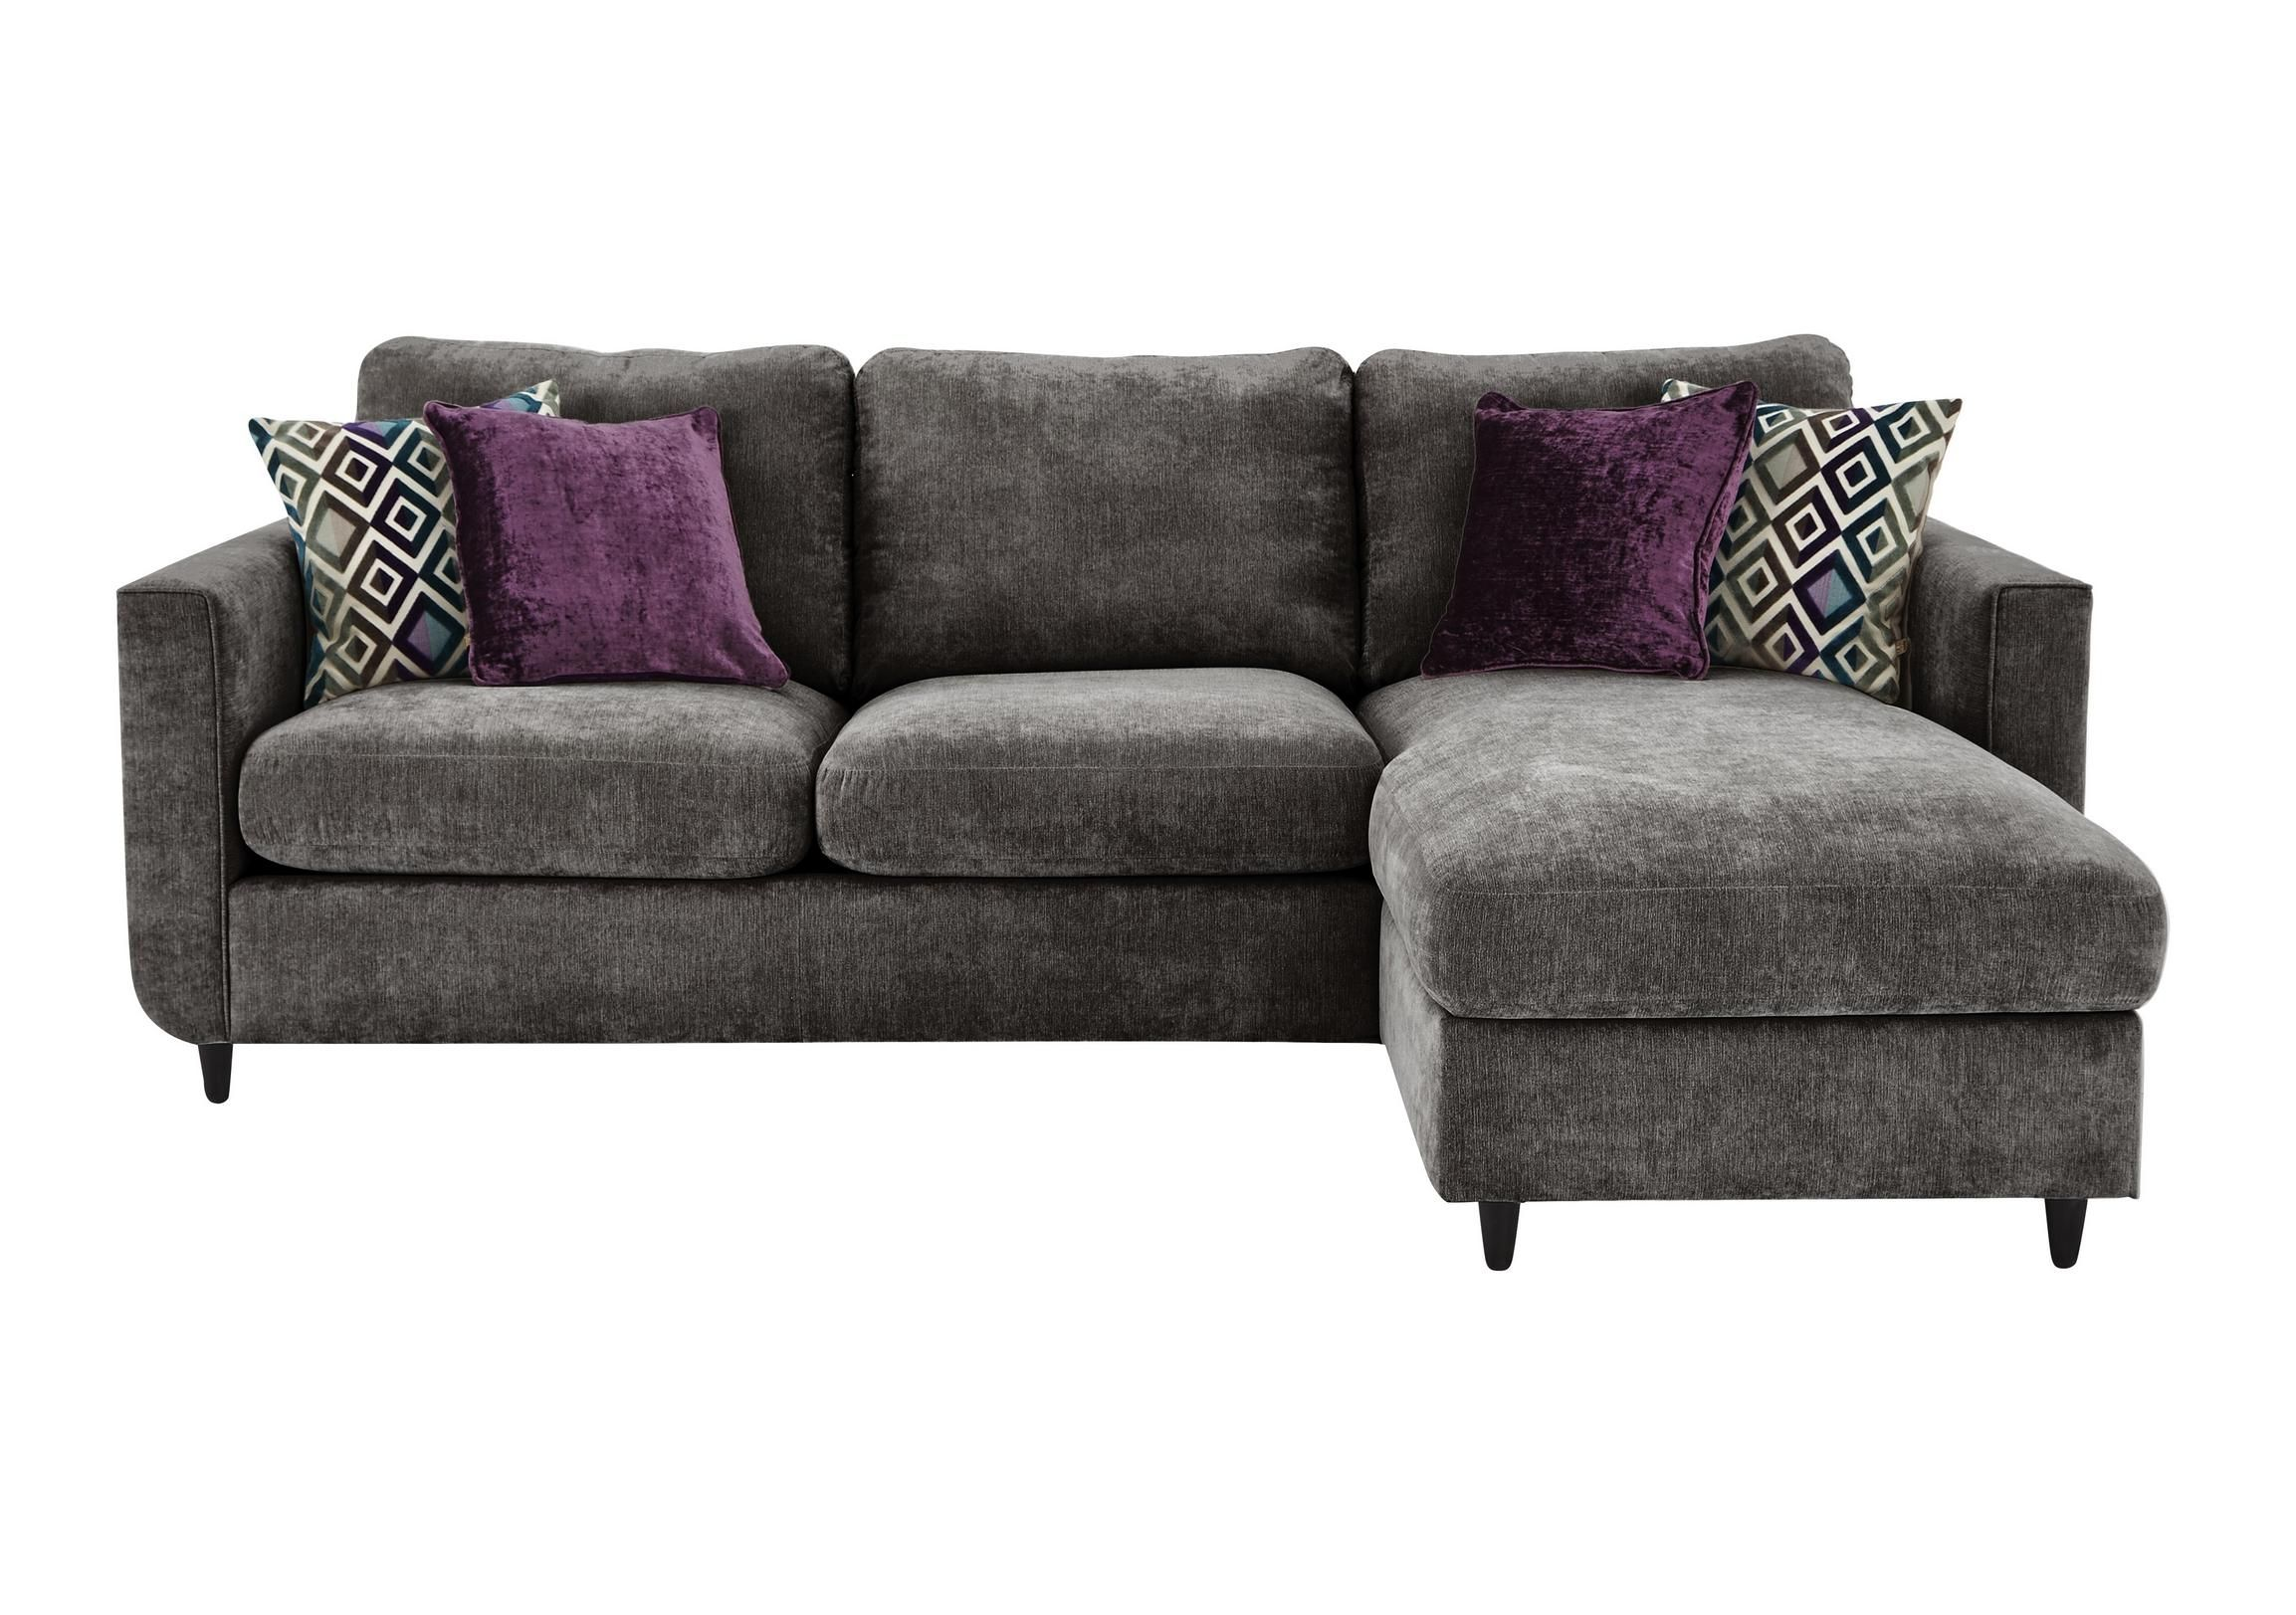 Esprit Chaise Sofa Bed With Storage Furniture Village Sofa Bed